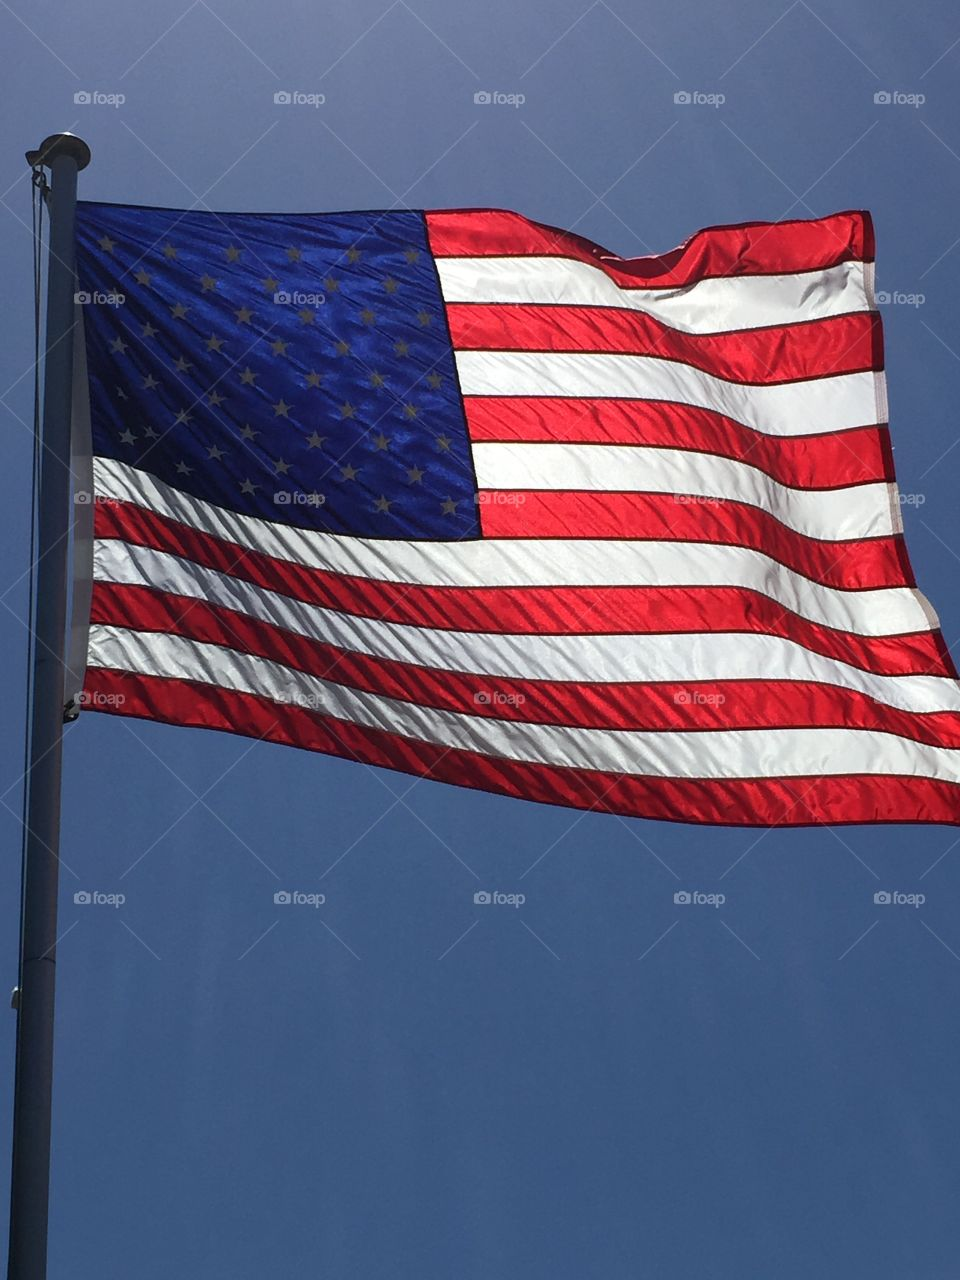 American flag. American flag blowing in the wind backlit